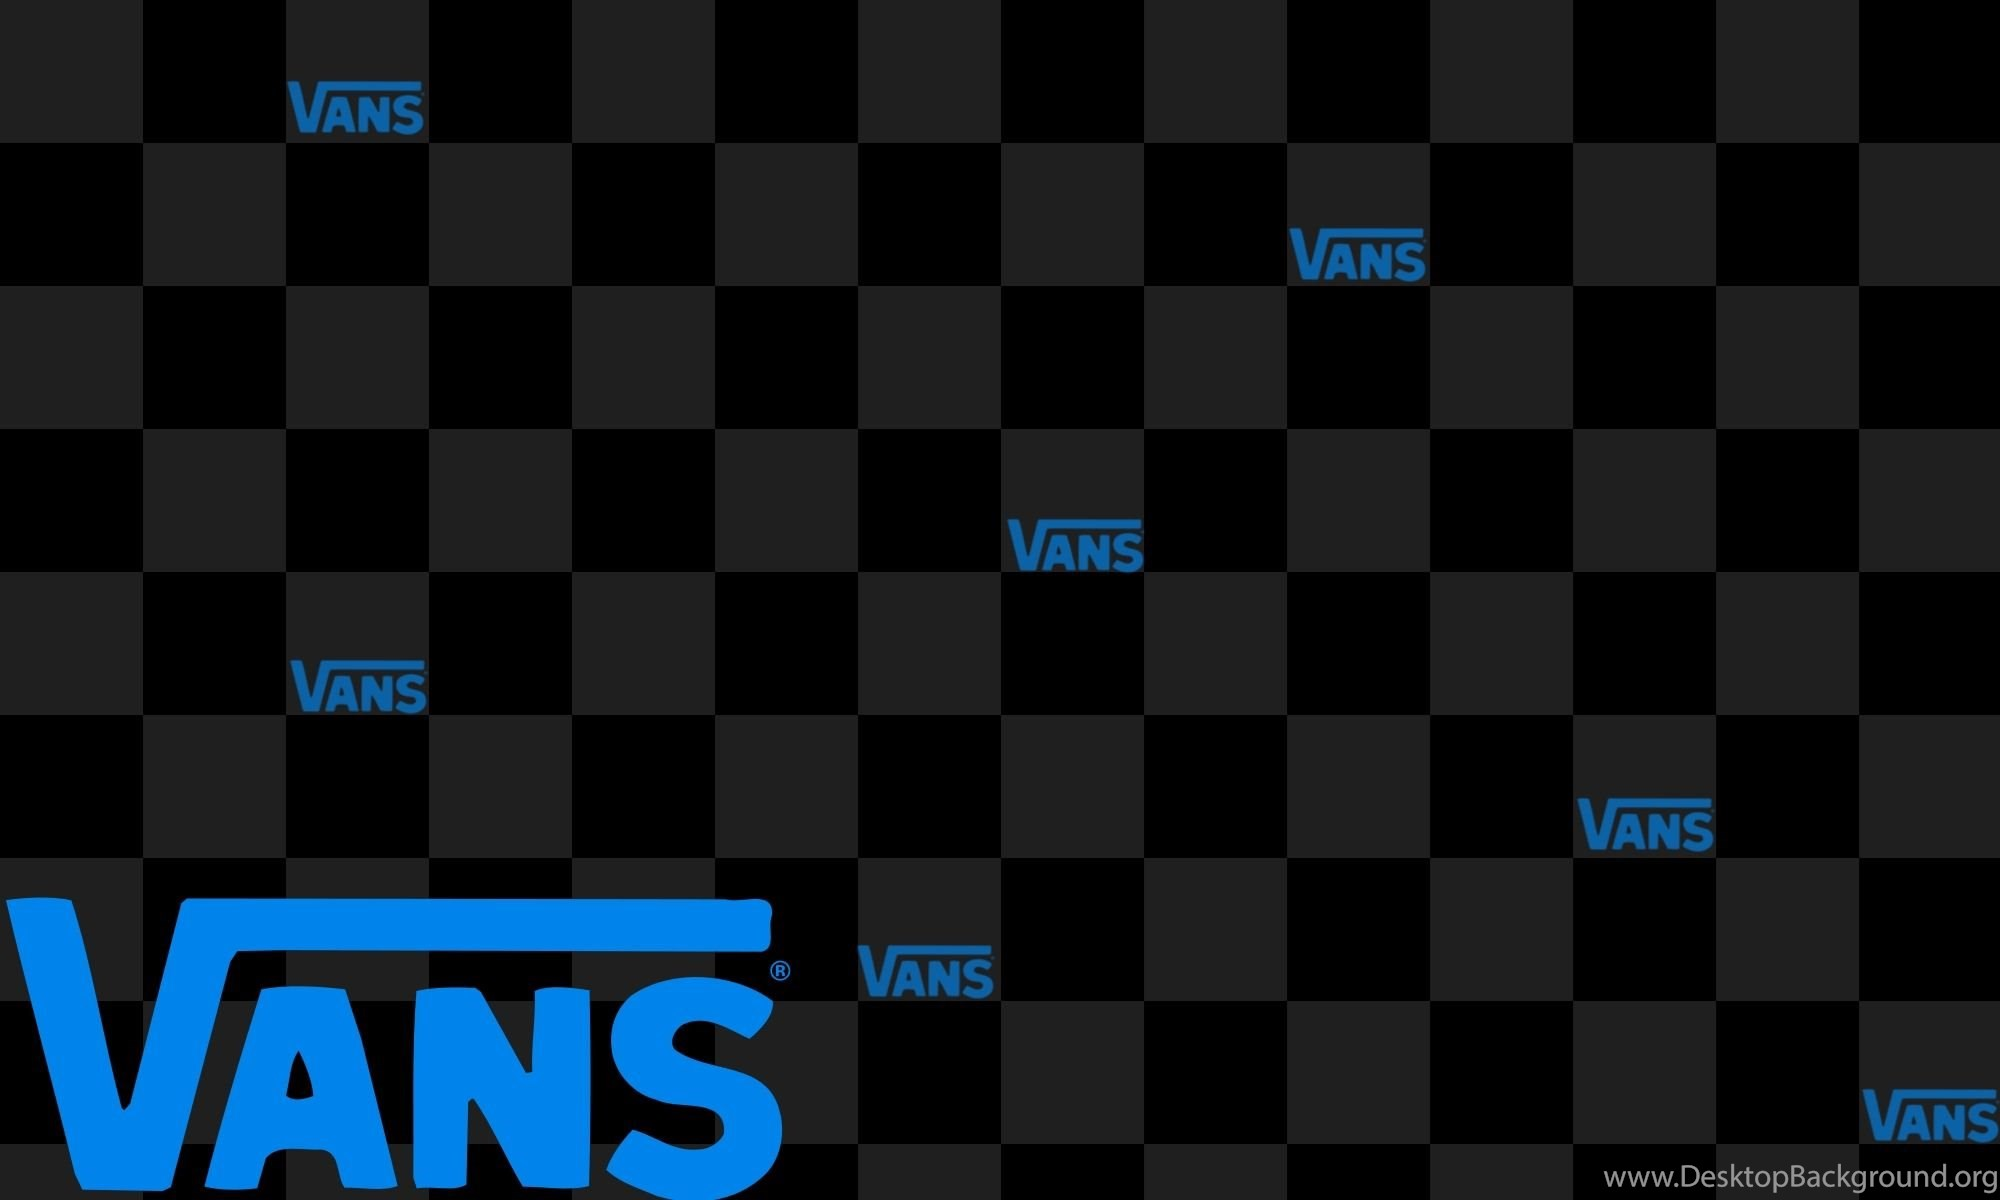 Cool Vans Logo Wallpaper Free Desktop | I HD Images